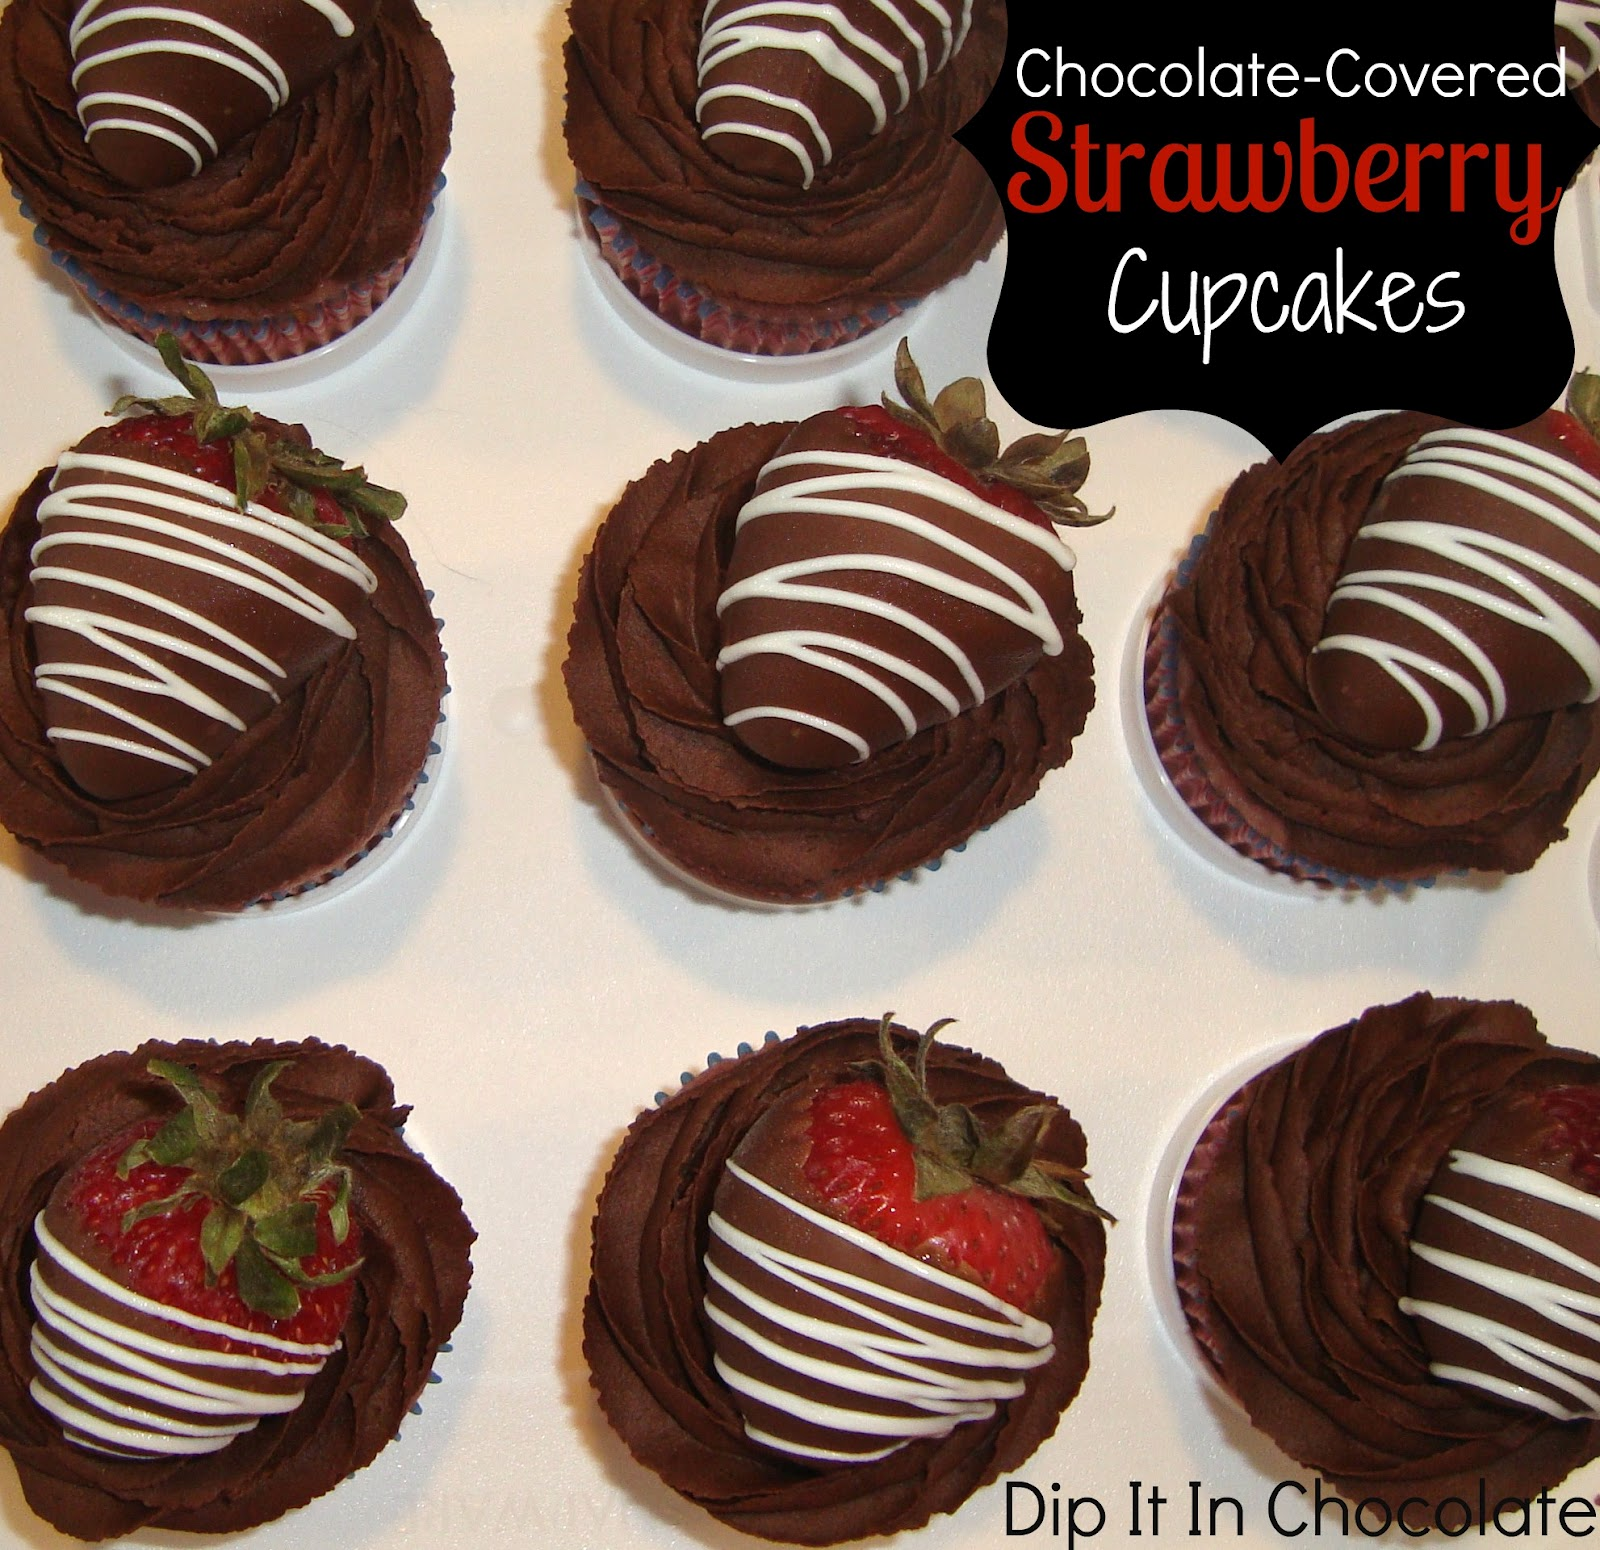 Chocolate-Covered Strawberry Cupcakes ~ Dip it in Chocolate